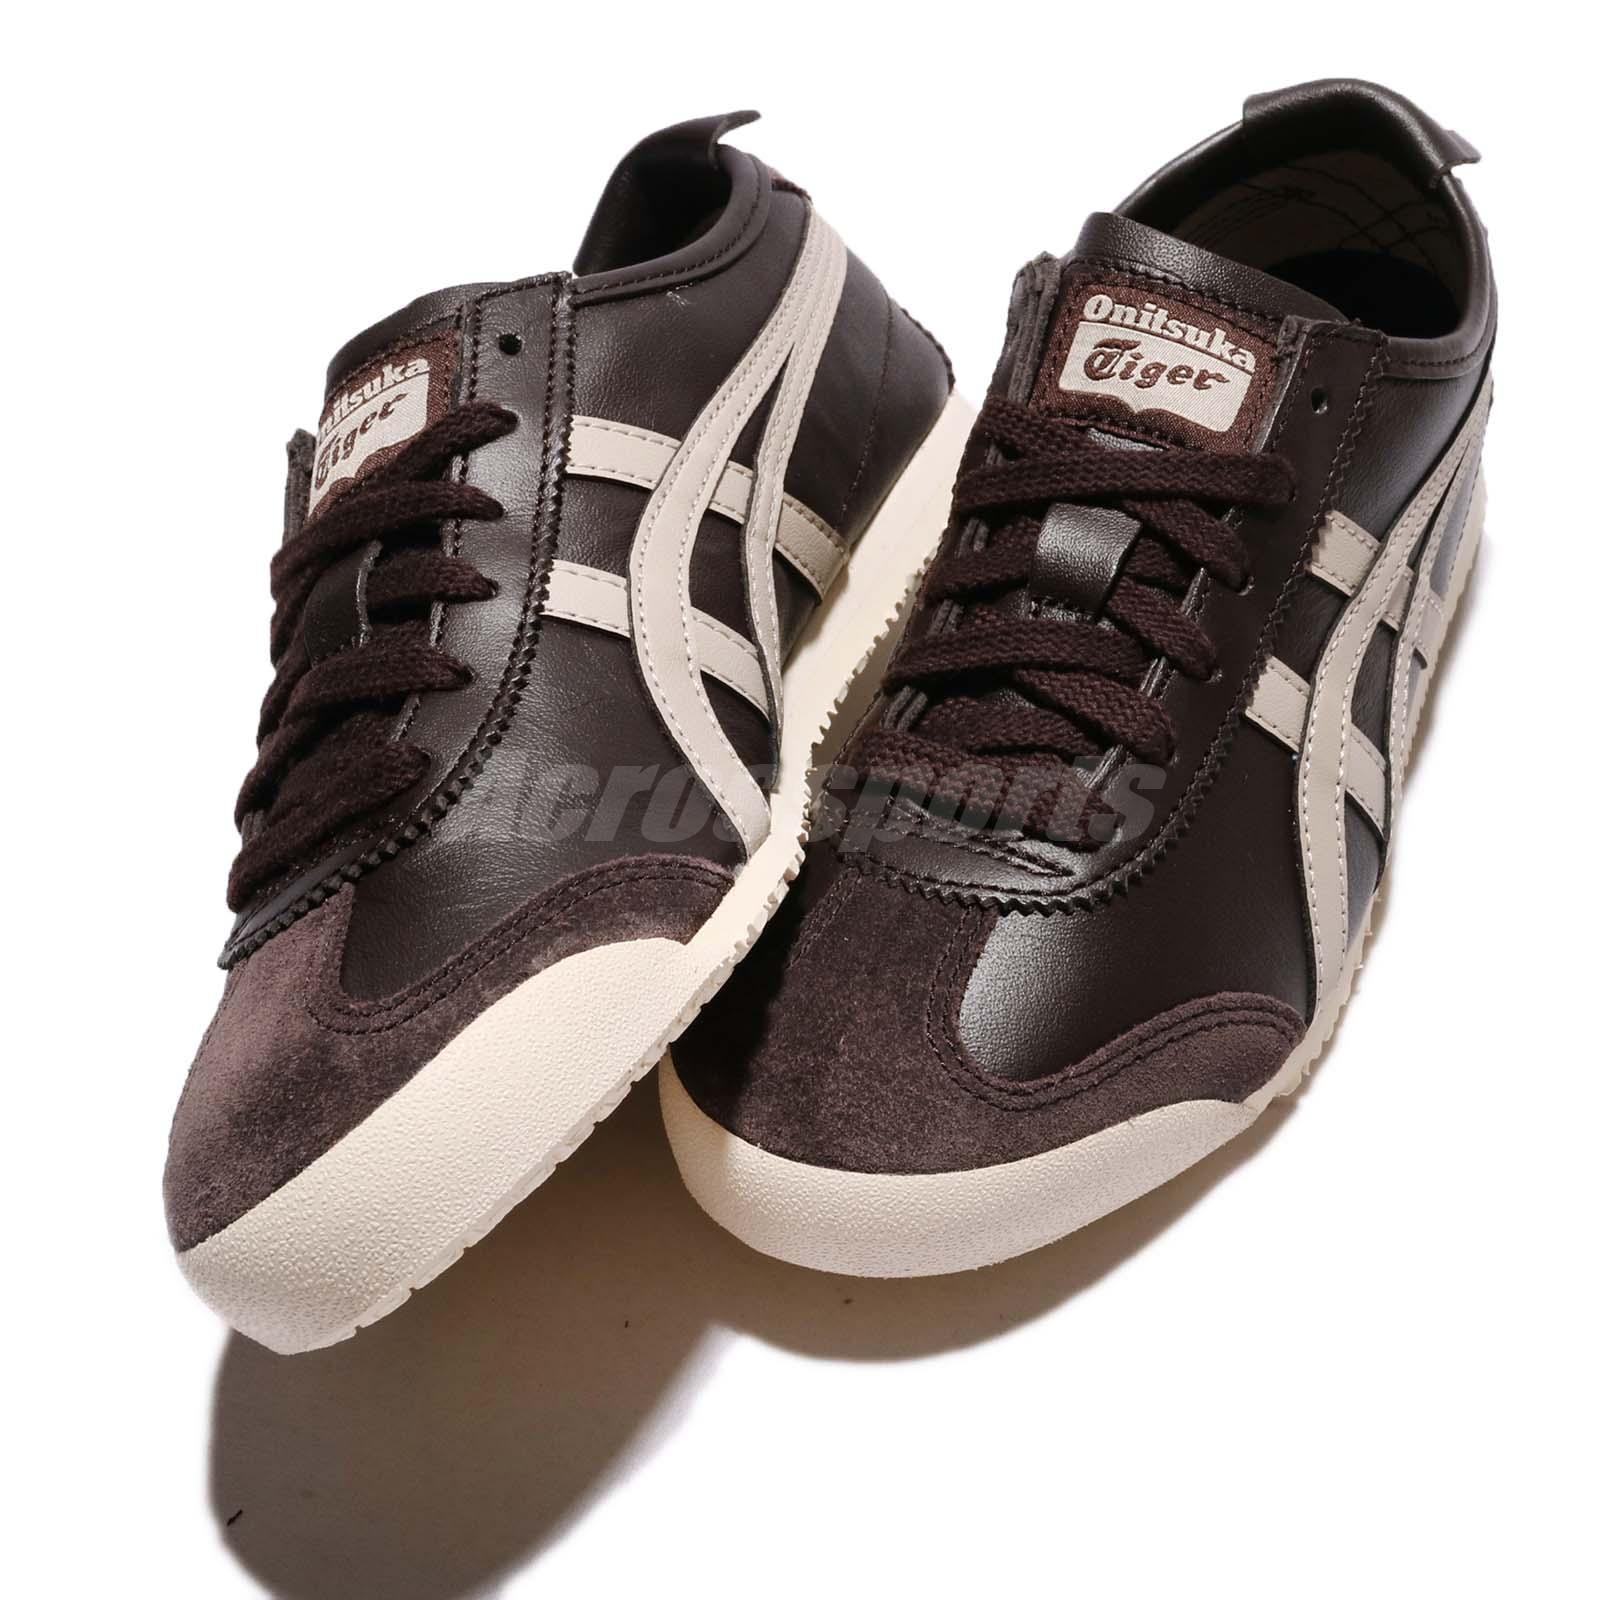 sale retailer 4a31e b9e31 Details about Asics Onitsuka Tiger Mexico 66 Coffee Feather Grey Men  Running Shoes D4J2L-2912